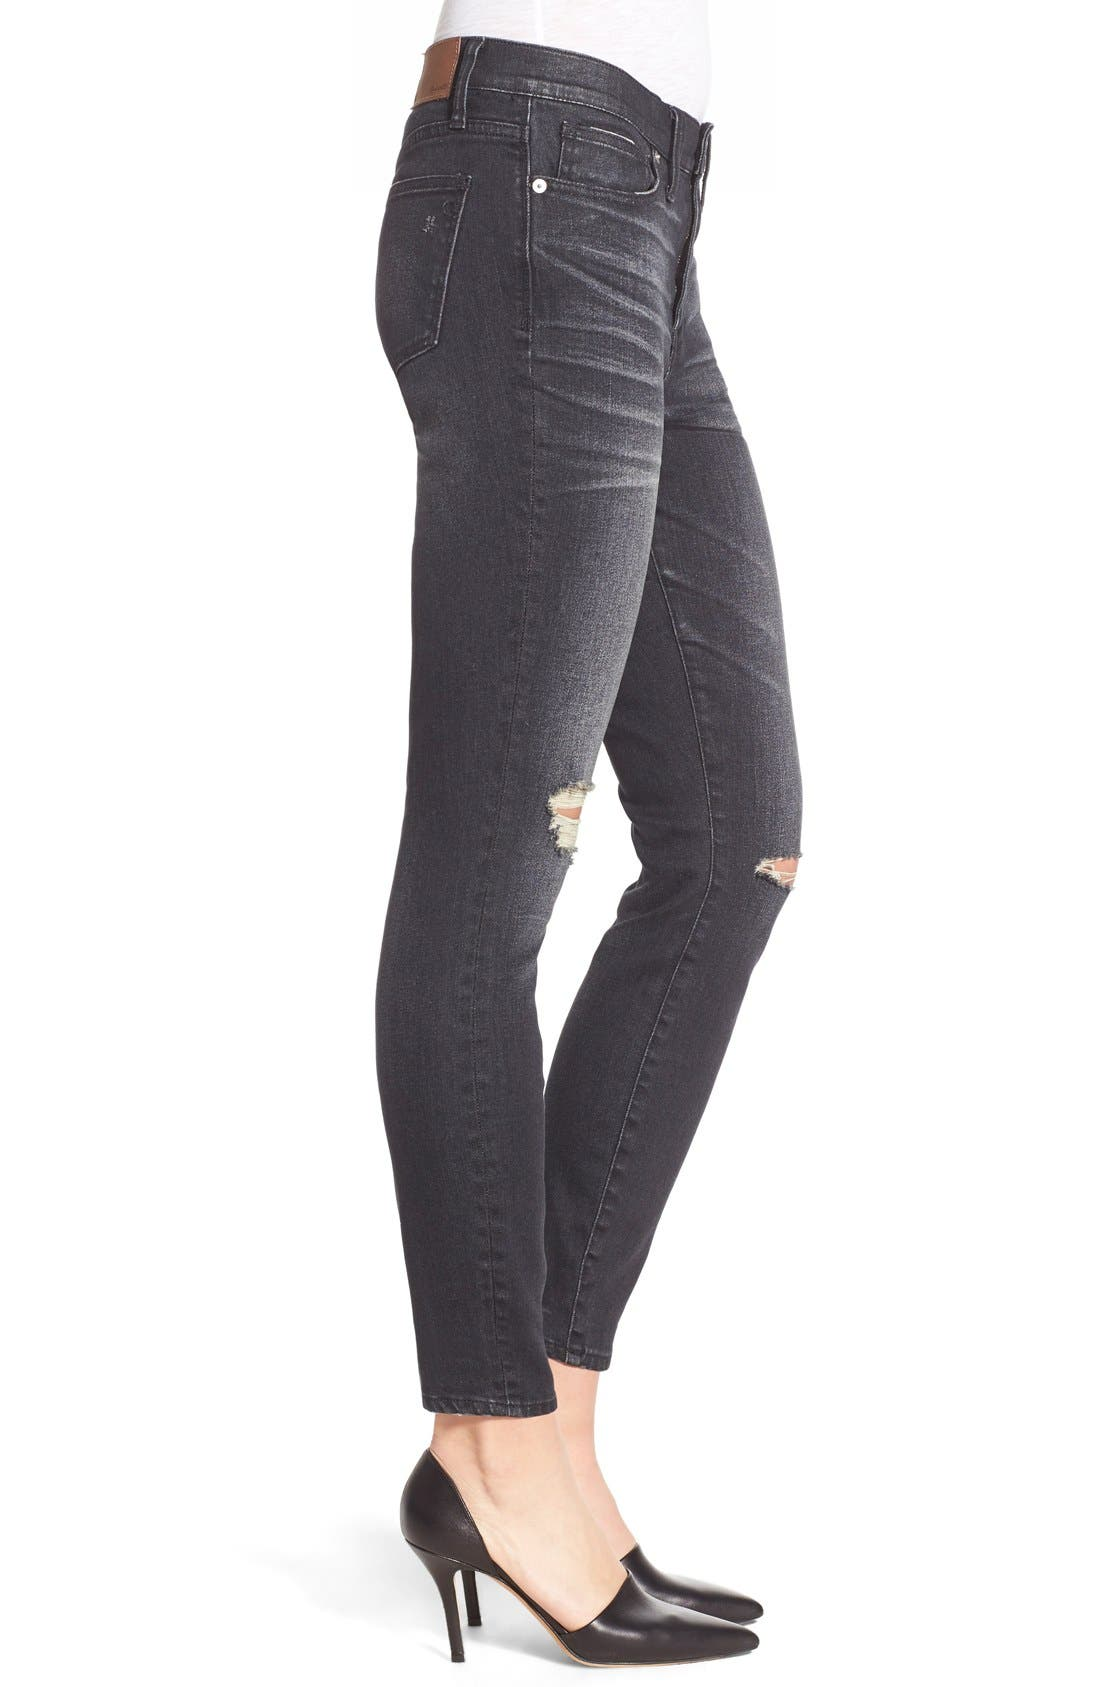 'High Riser' Skinny Skinny Jeans,                             Alternate thumbnail 4, color,                             Kincaid Wash